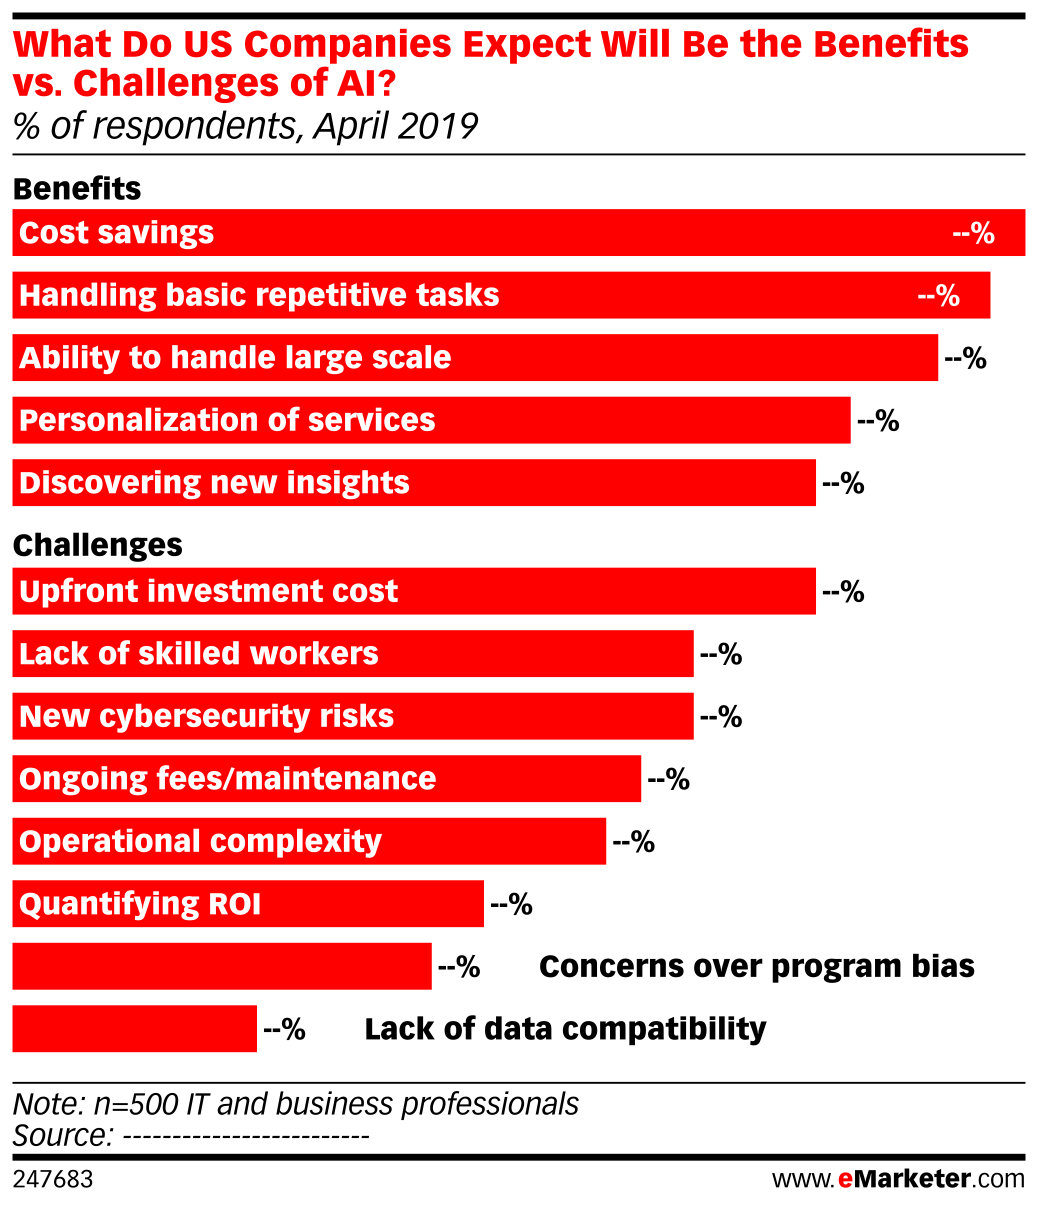 What Do US Companies Expect Will Be the Benefits vs. Challenges of AI? (% of respondents, April 2019)